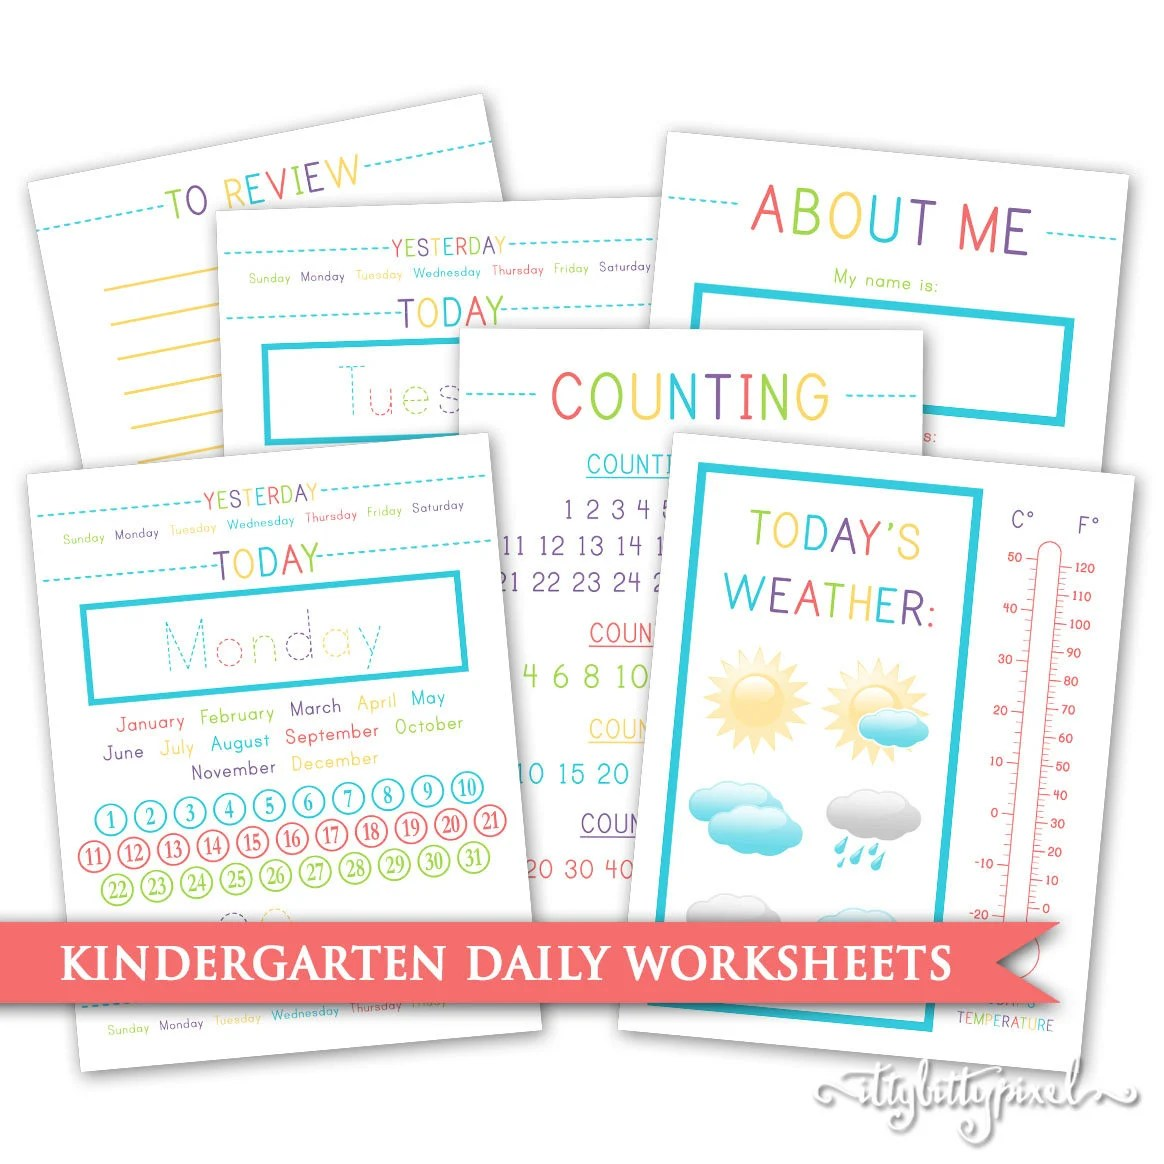 Kindergarten Daily Worksheets Calendar Month Day Week Date